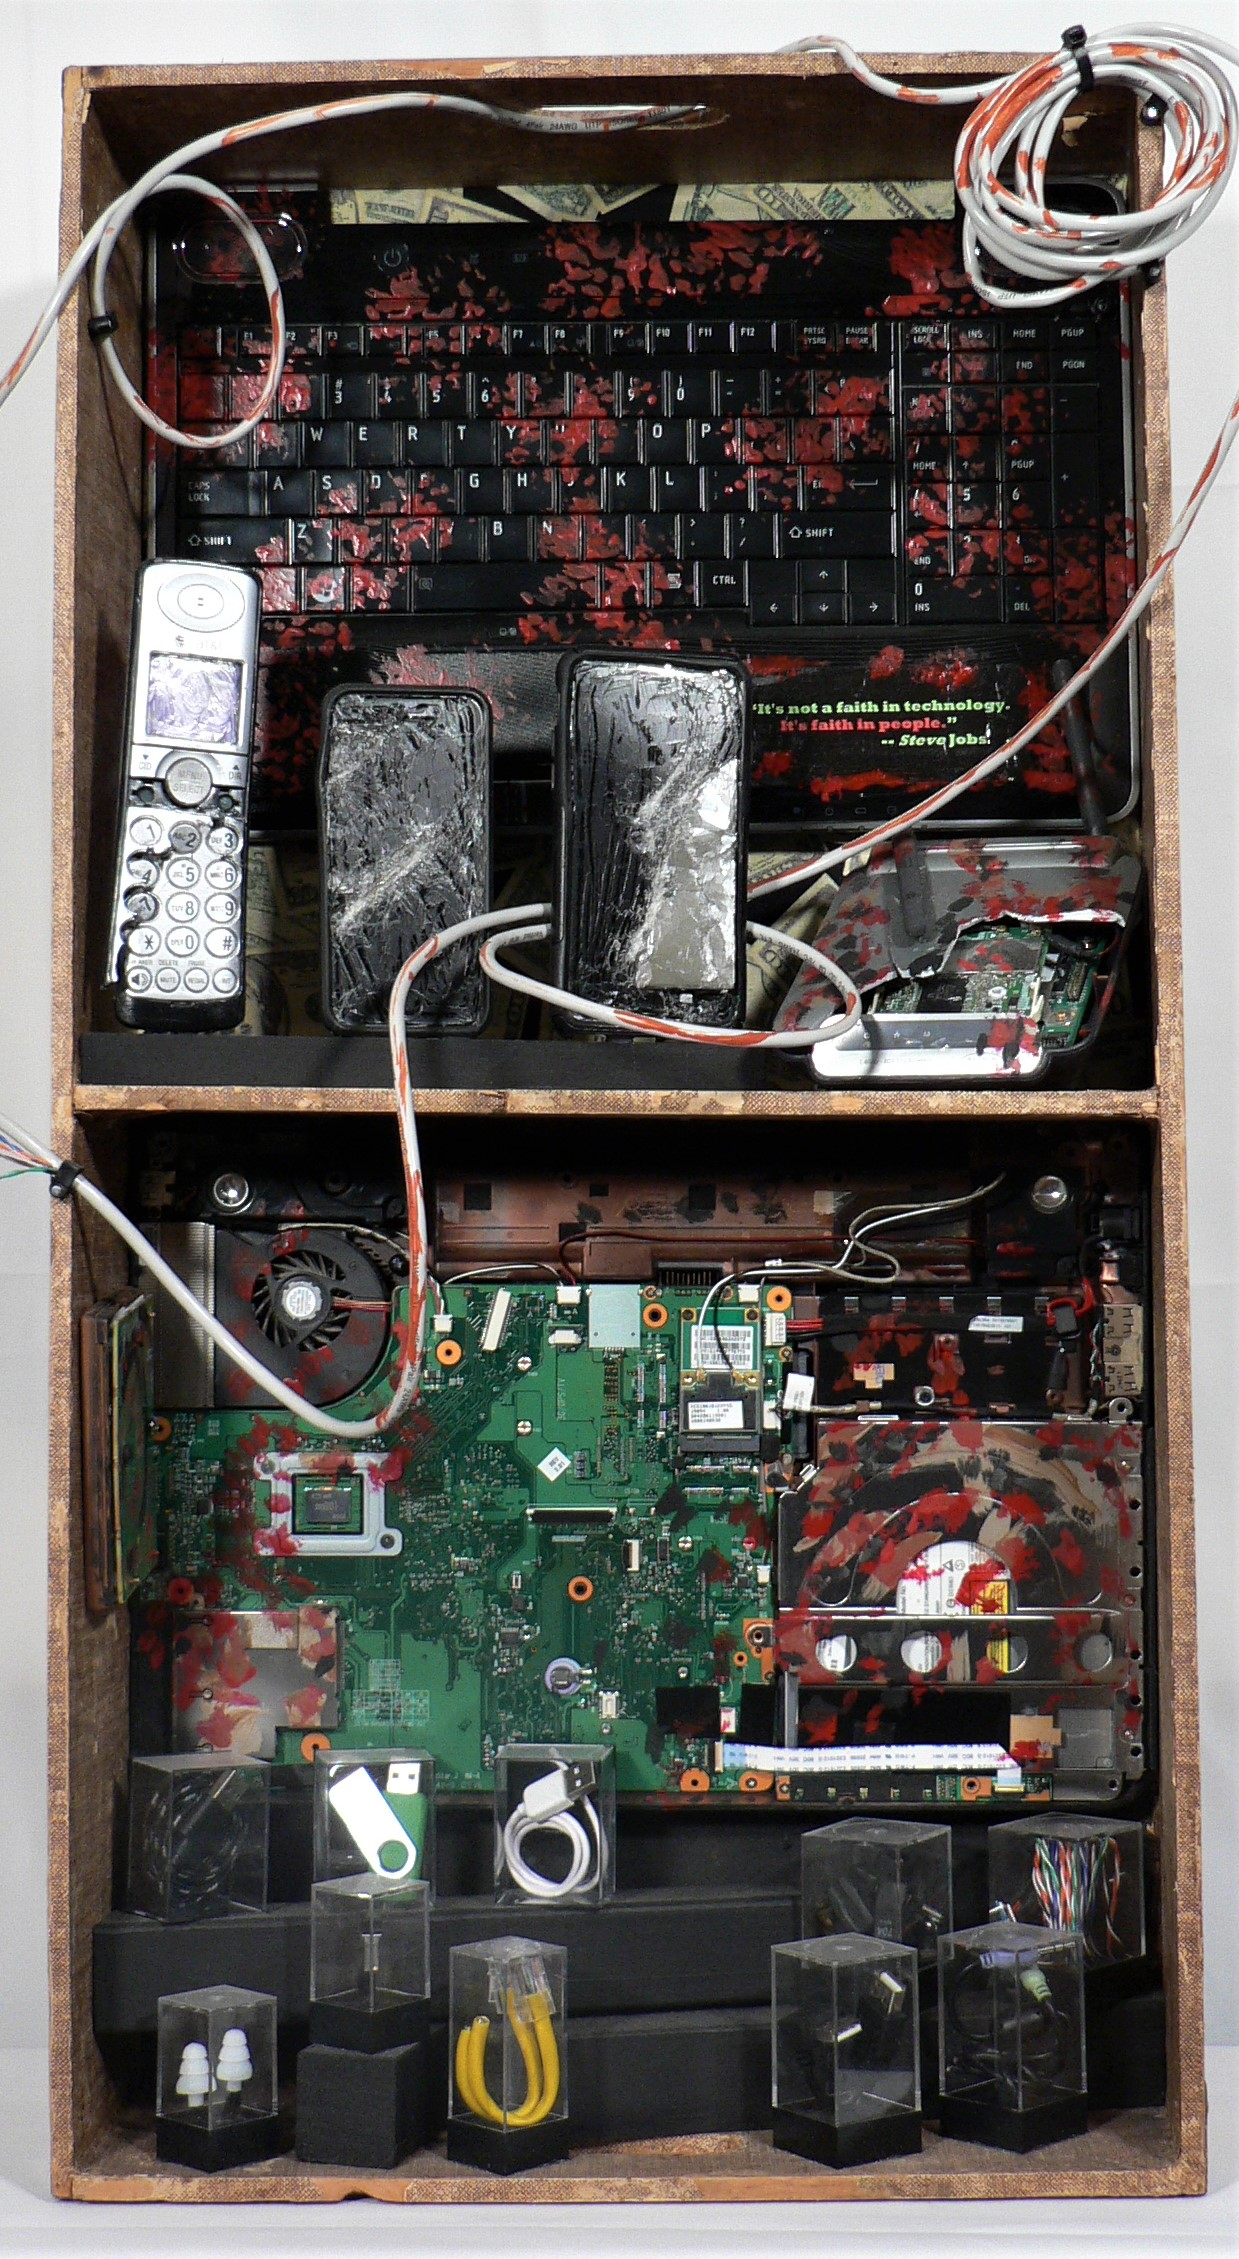 "Breaking Free - ""It's not a faith in technology. It's faith in people."" -- Steve JobsMaterials: Cardboard and wood desk divider; recycled telecommunications and computer gear; acrylic paint; wire; plastic display boxes; paper images; textile; paper. Dimensions: 30""H x 16""W x 5""D. Created: May 2018.Status: For Sale ($400)"